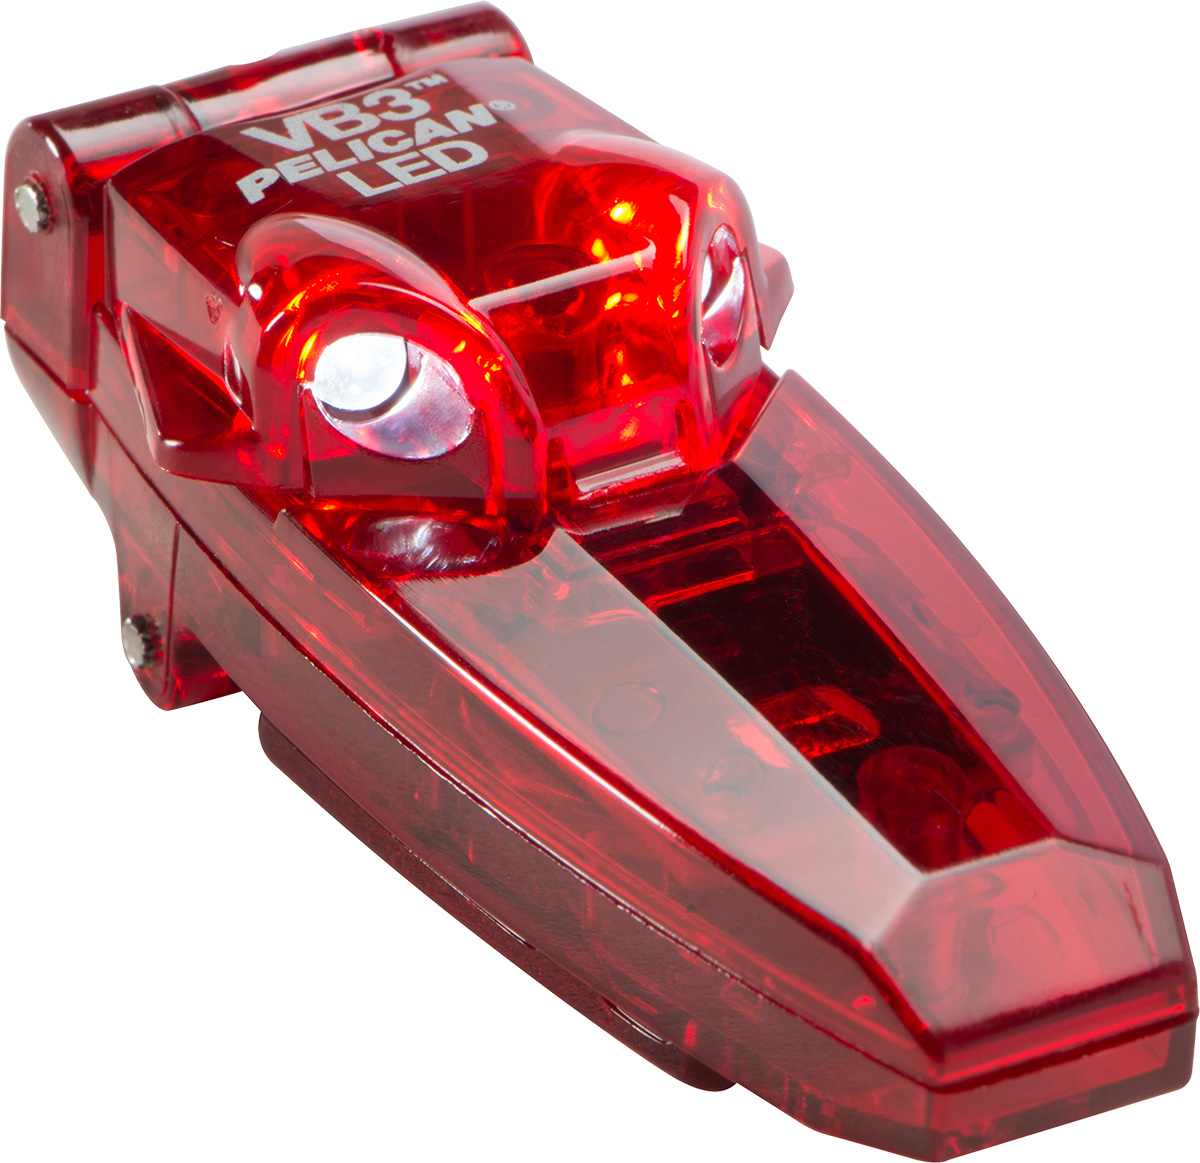 pelican peli products 2220 red mechanic hat clip on led light